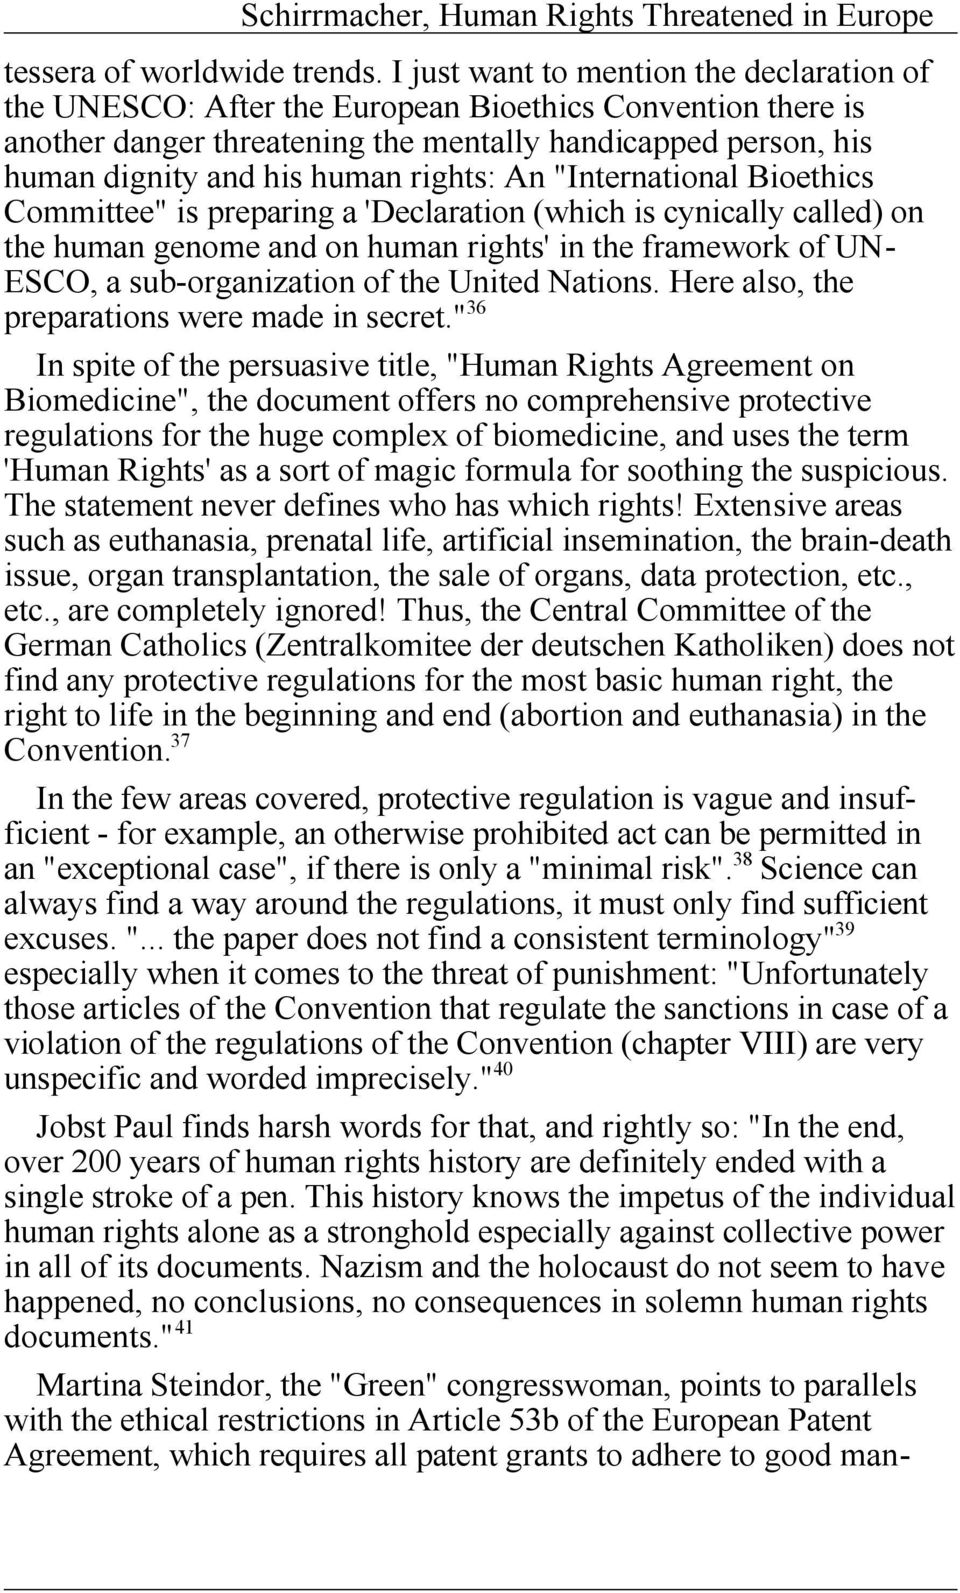 "rights: An ""International Bioethics Committee"" is preparing a 'Declaration (which is cynically called) on the human genome and on human rights' in the framework of UN- ESCO, a sub-organization of the"